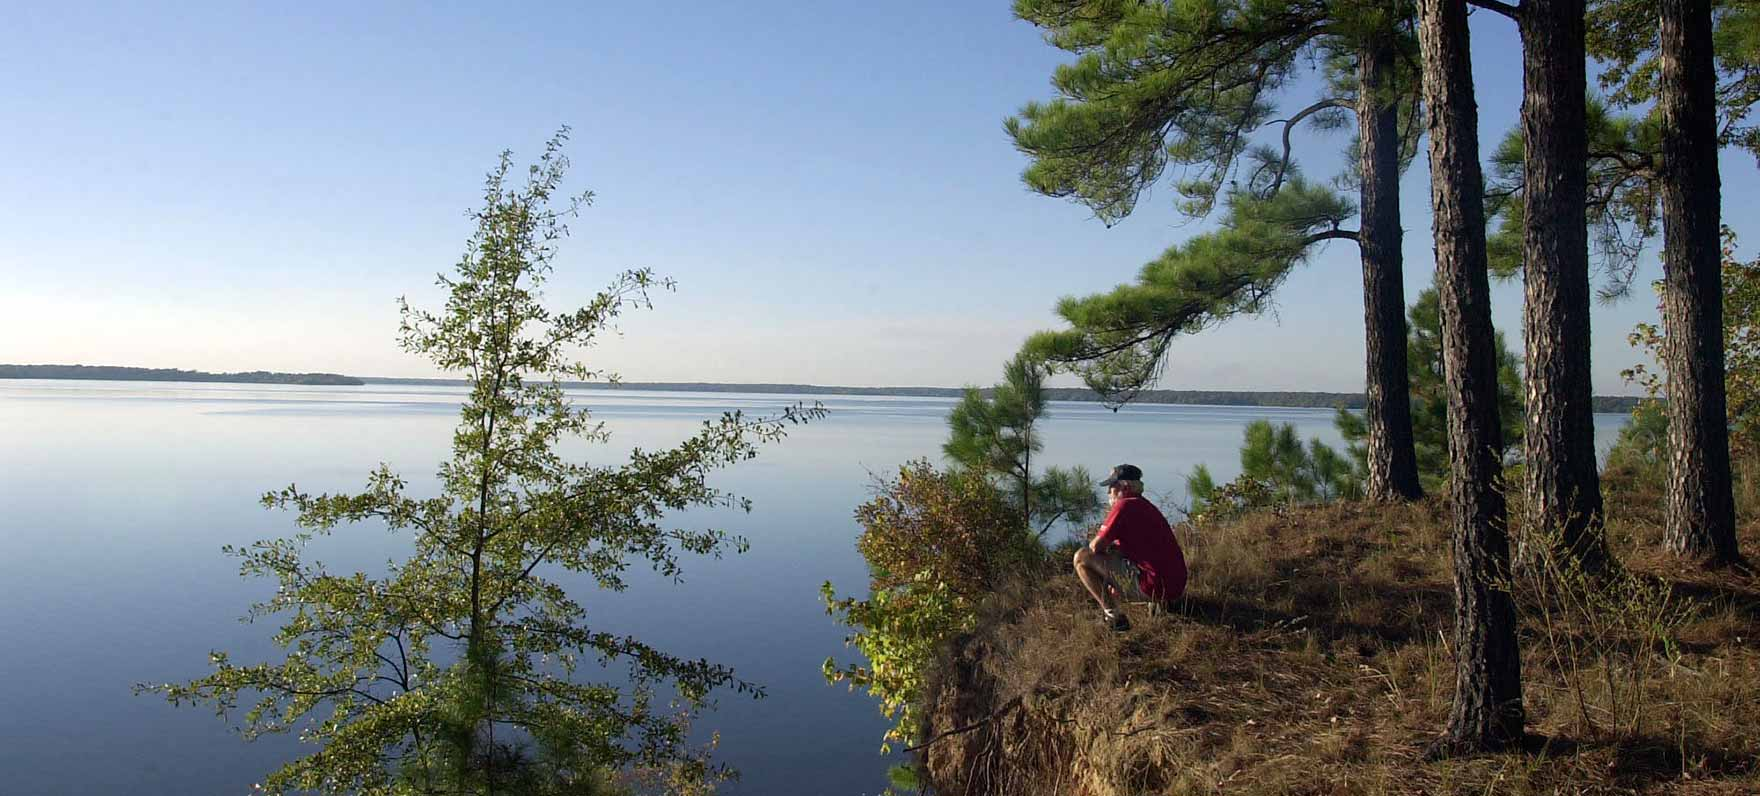 Atlanta state park texas parks wildlife department for Campsites with fishing